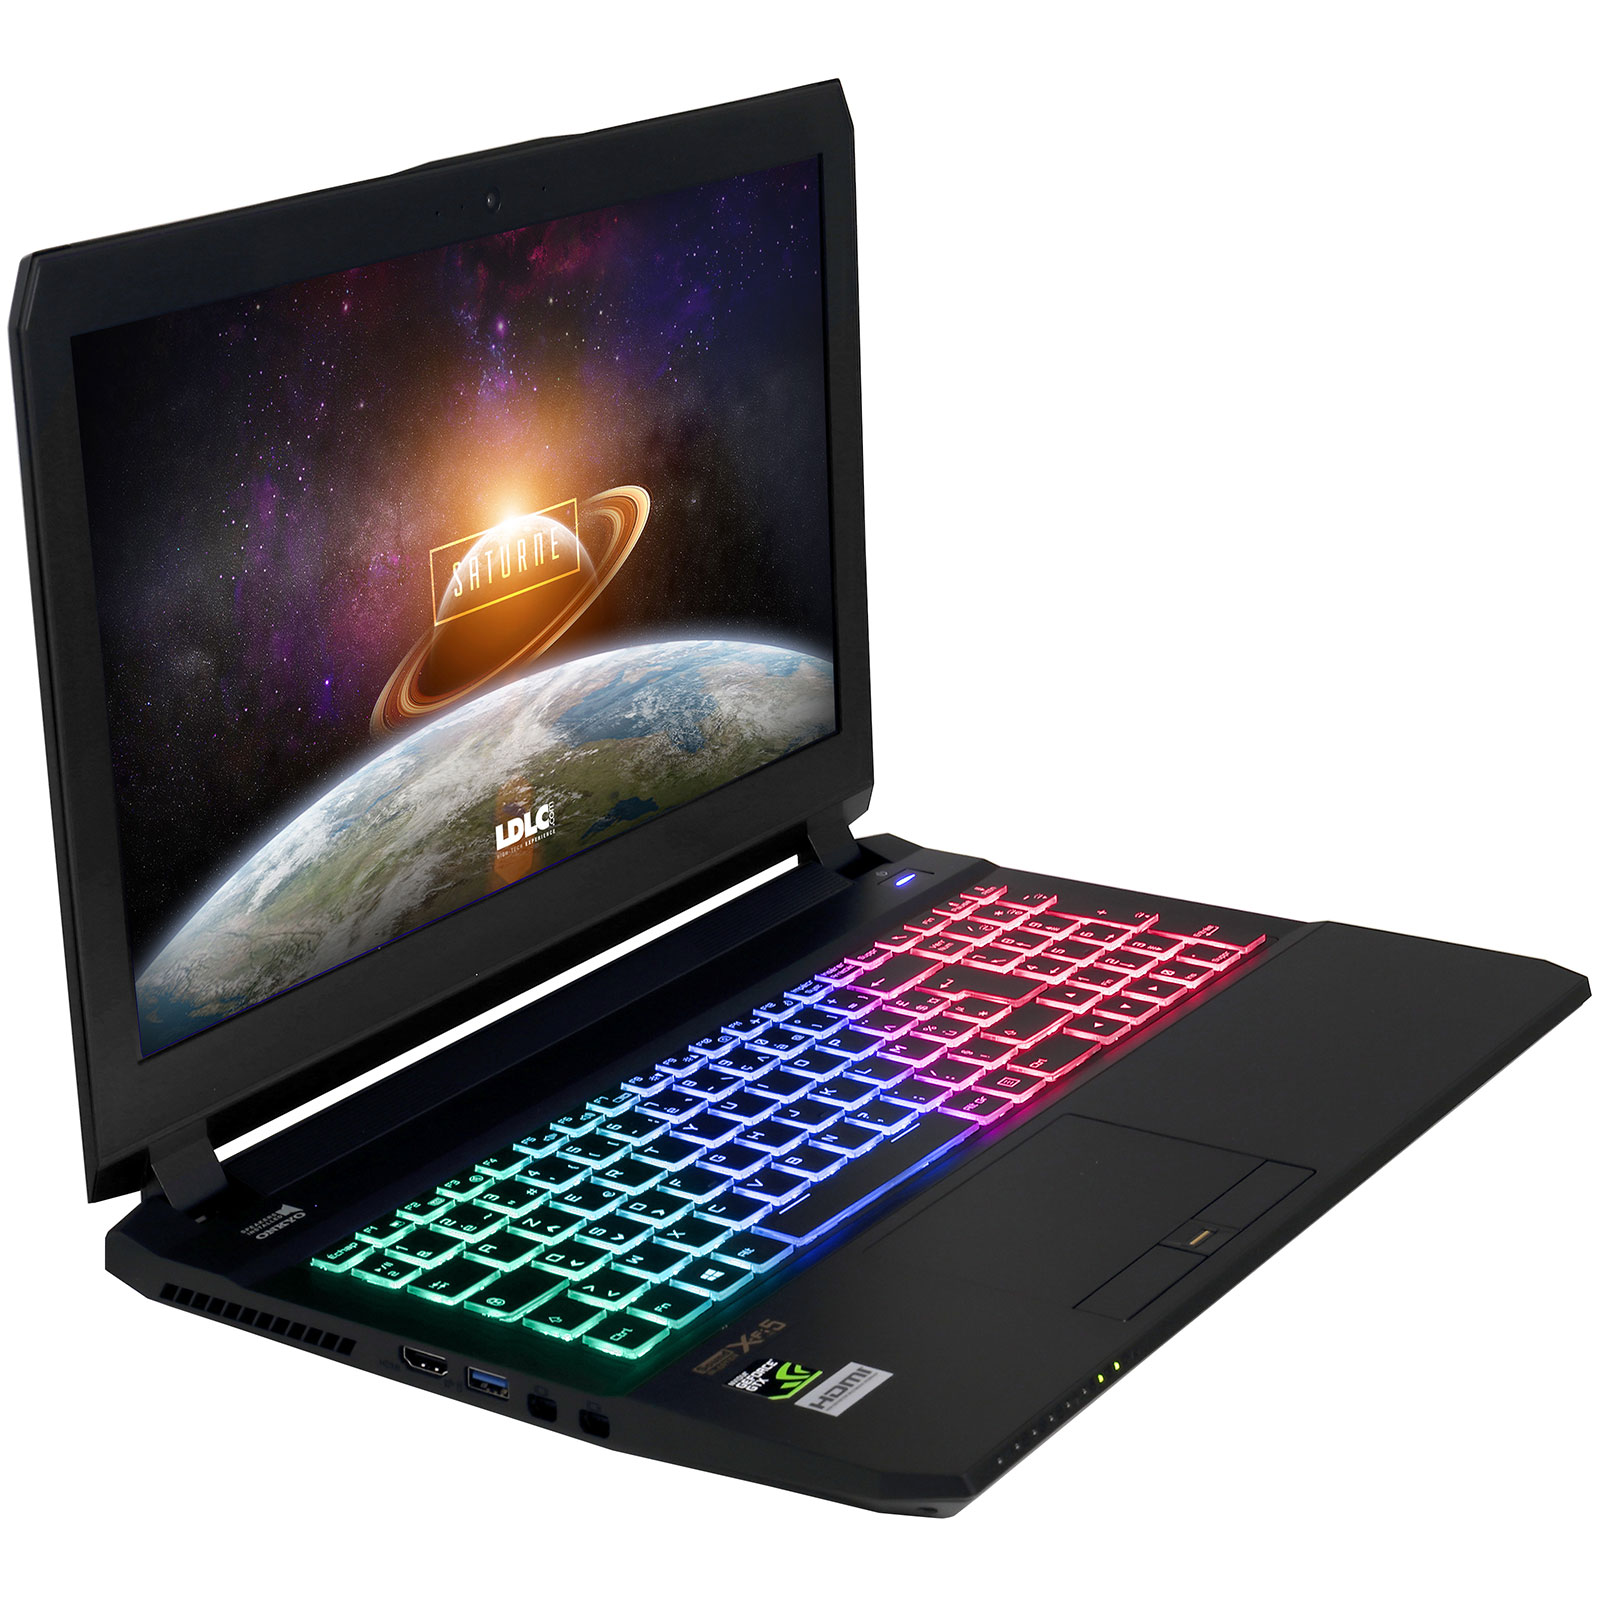 "PC portable LDLC Saturne TK71A-I7-16-H20S5-P10 Intel Core i7-7700HQ 16 Go SSD 525 Go + HDD 2 To 15.6"" LED Full HD NVIDIA GeForce GTX 1070 8 Go Wi-Fi AC/Bluetooth Webcam Windows 10 Professionnel 64 bits"